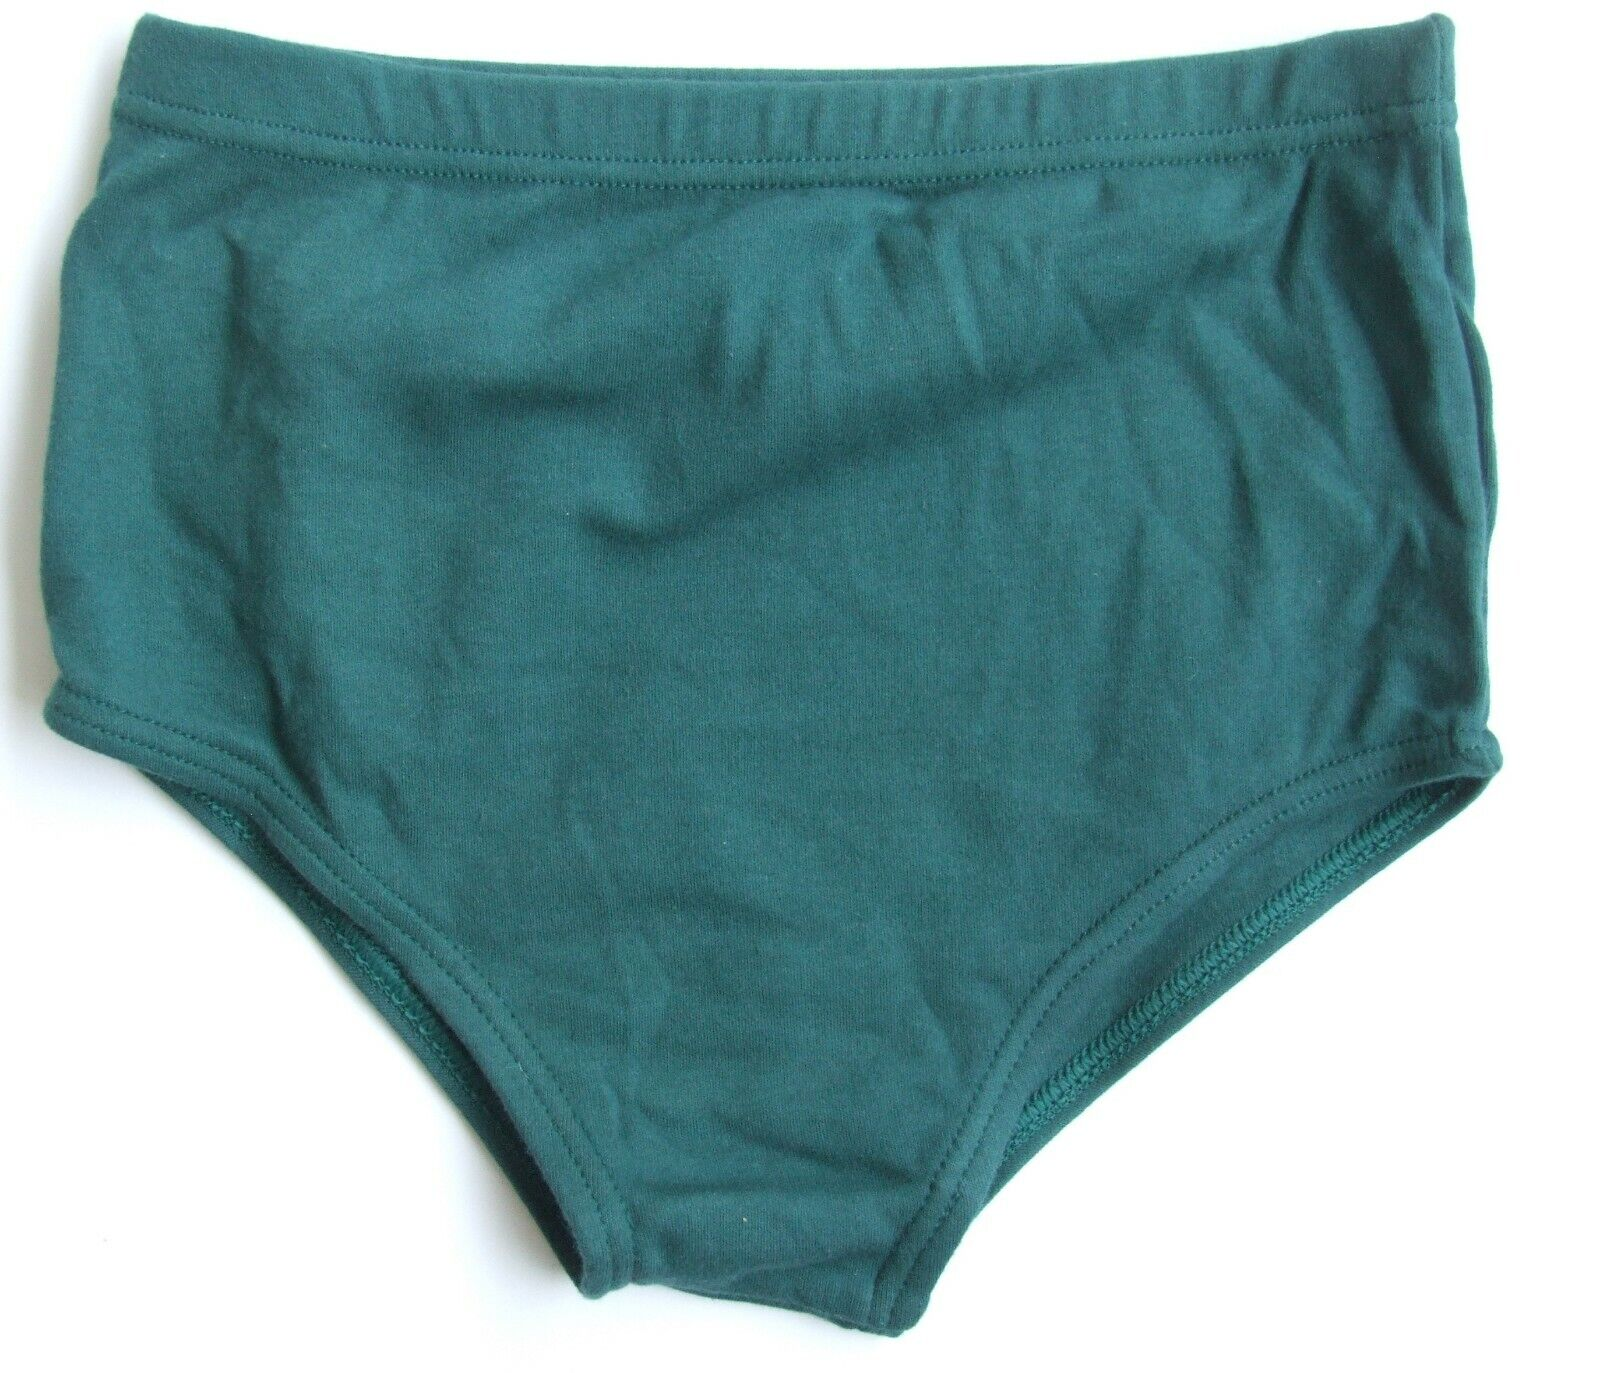 School Gym knickers size 8 sports pants netball briefs stretchy cotton Blue